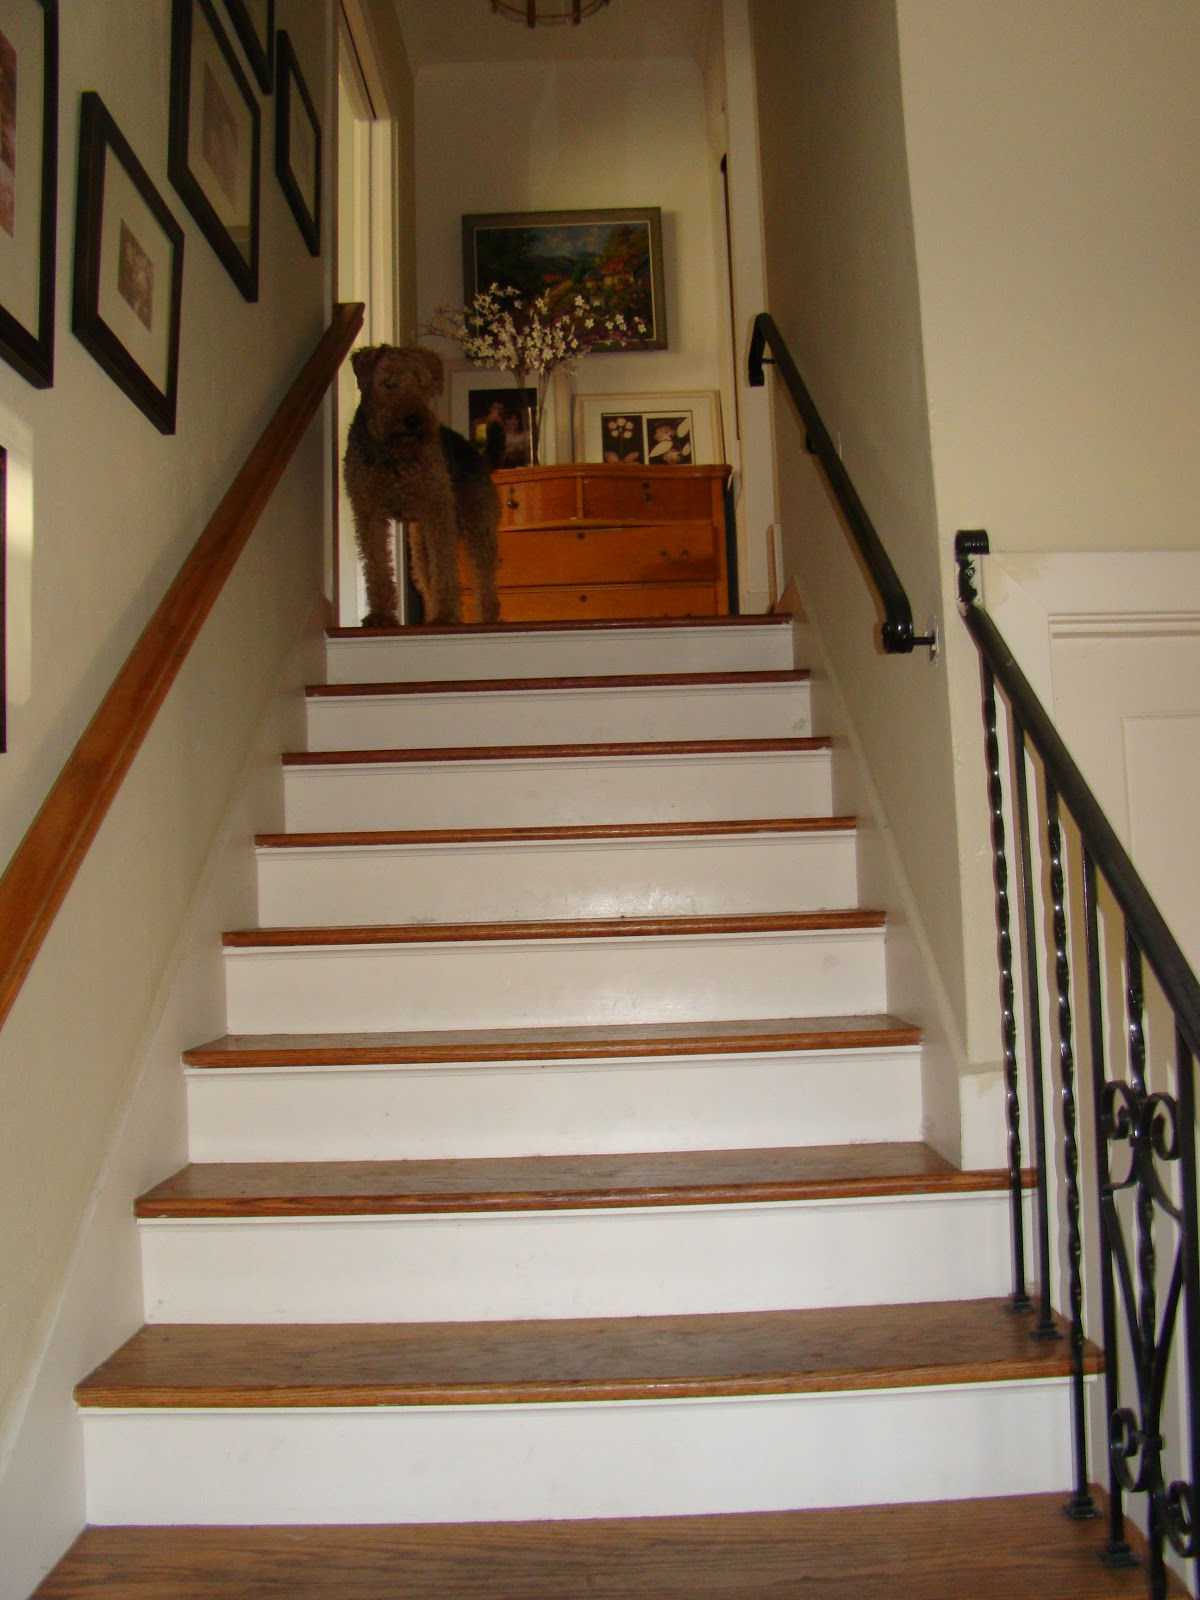 Wallpapered Stairs - WallpaperSafari on home bookcase design, home trim design, home balcony design, home steel design, home bridge design, home corridor design, home stage design, home interior design, home terrace design, home building design, home church design, home arches design, home pantry design, home wall design, home stairway design, home house design, home restaurant design, home modern design, home painting design, home column design,